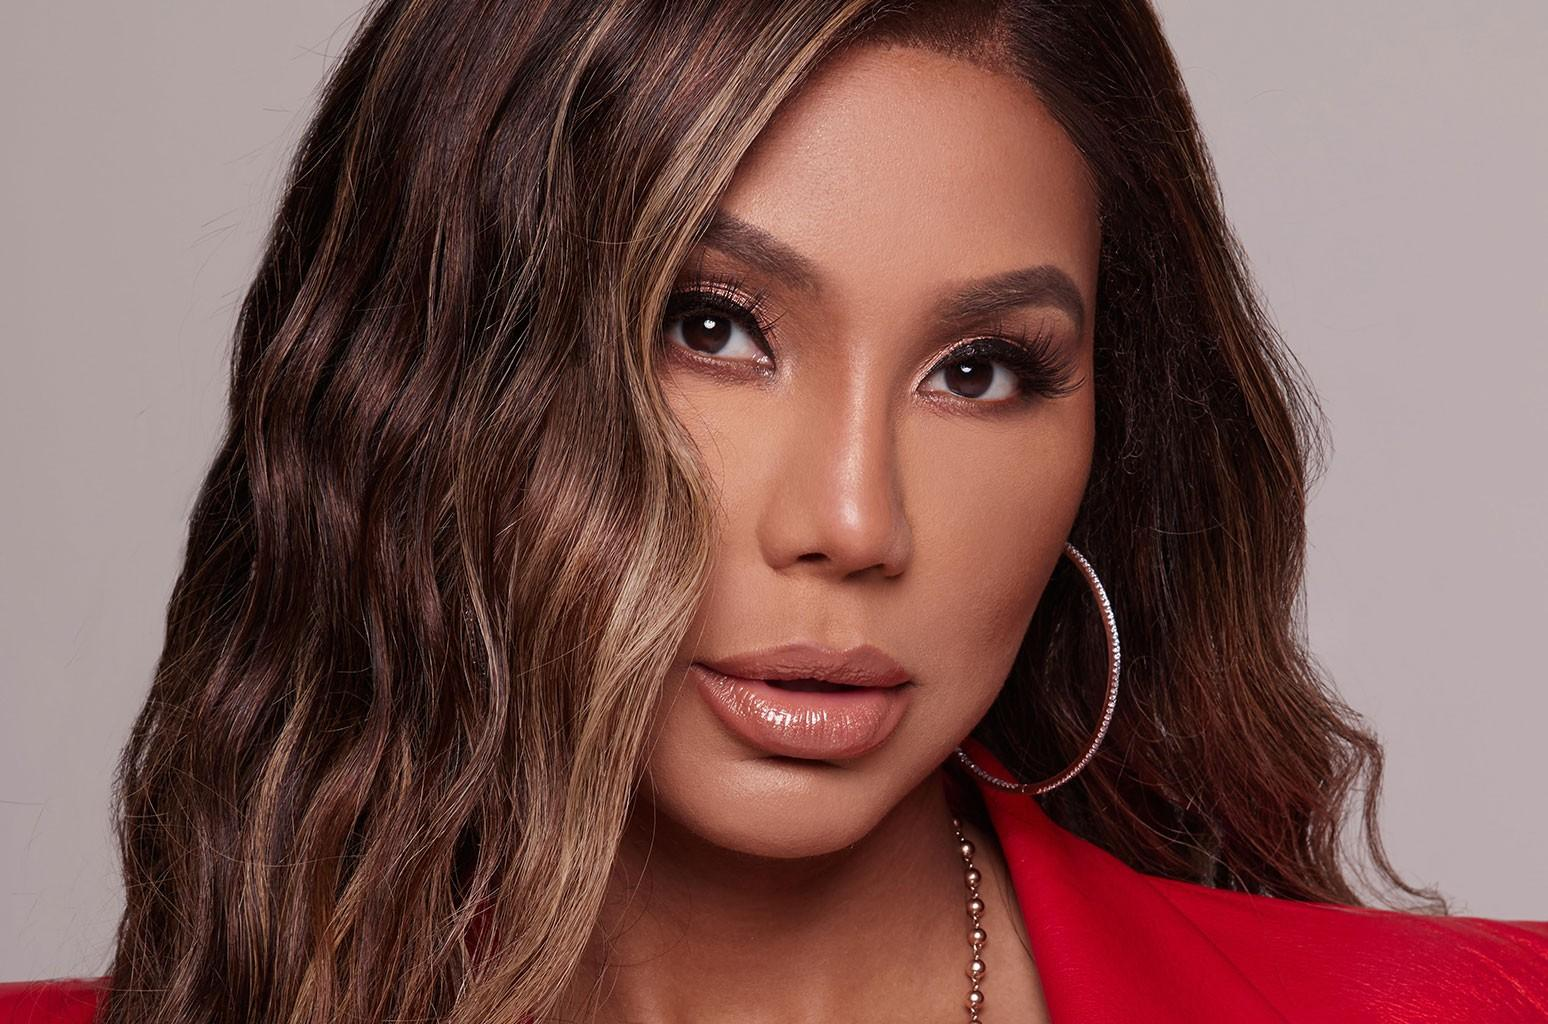 Tamar Braxton Looks Stunning In Elegant Bustier Dress And Fans Can't Get Over Her 'New Glow'